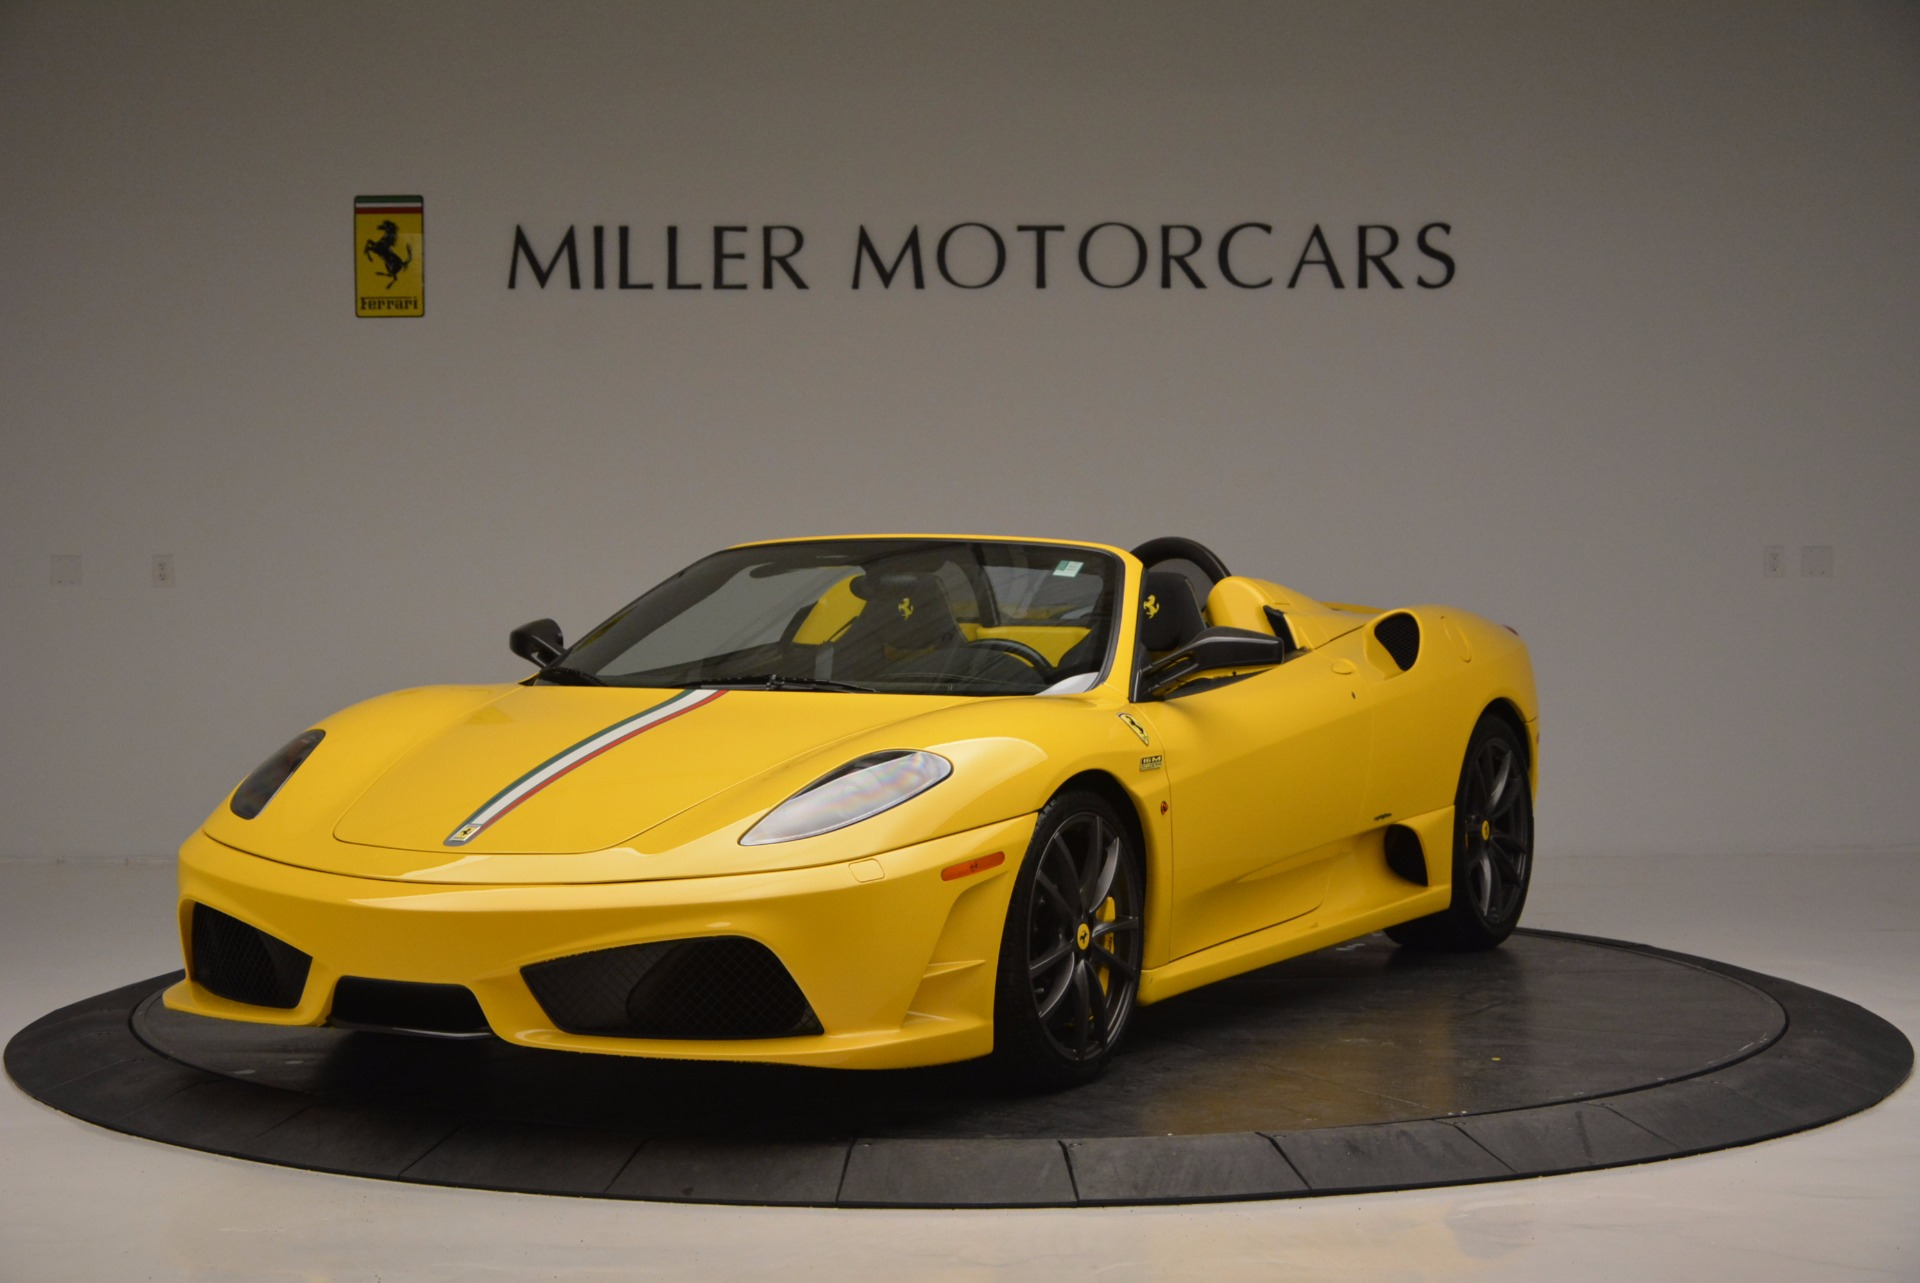 Used 2009 Ferrari F430 Scuderia 16M for sale Sold at Aston Martin of Greenwich in Greenwich CT 06830 1